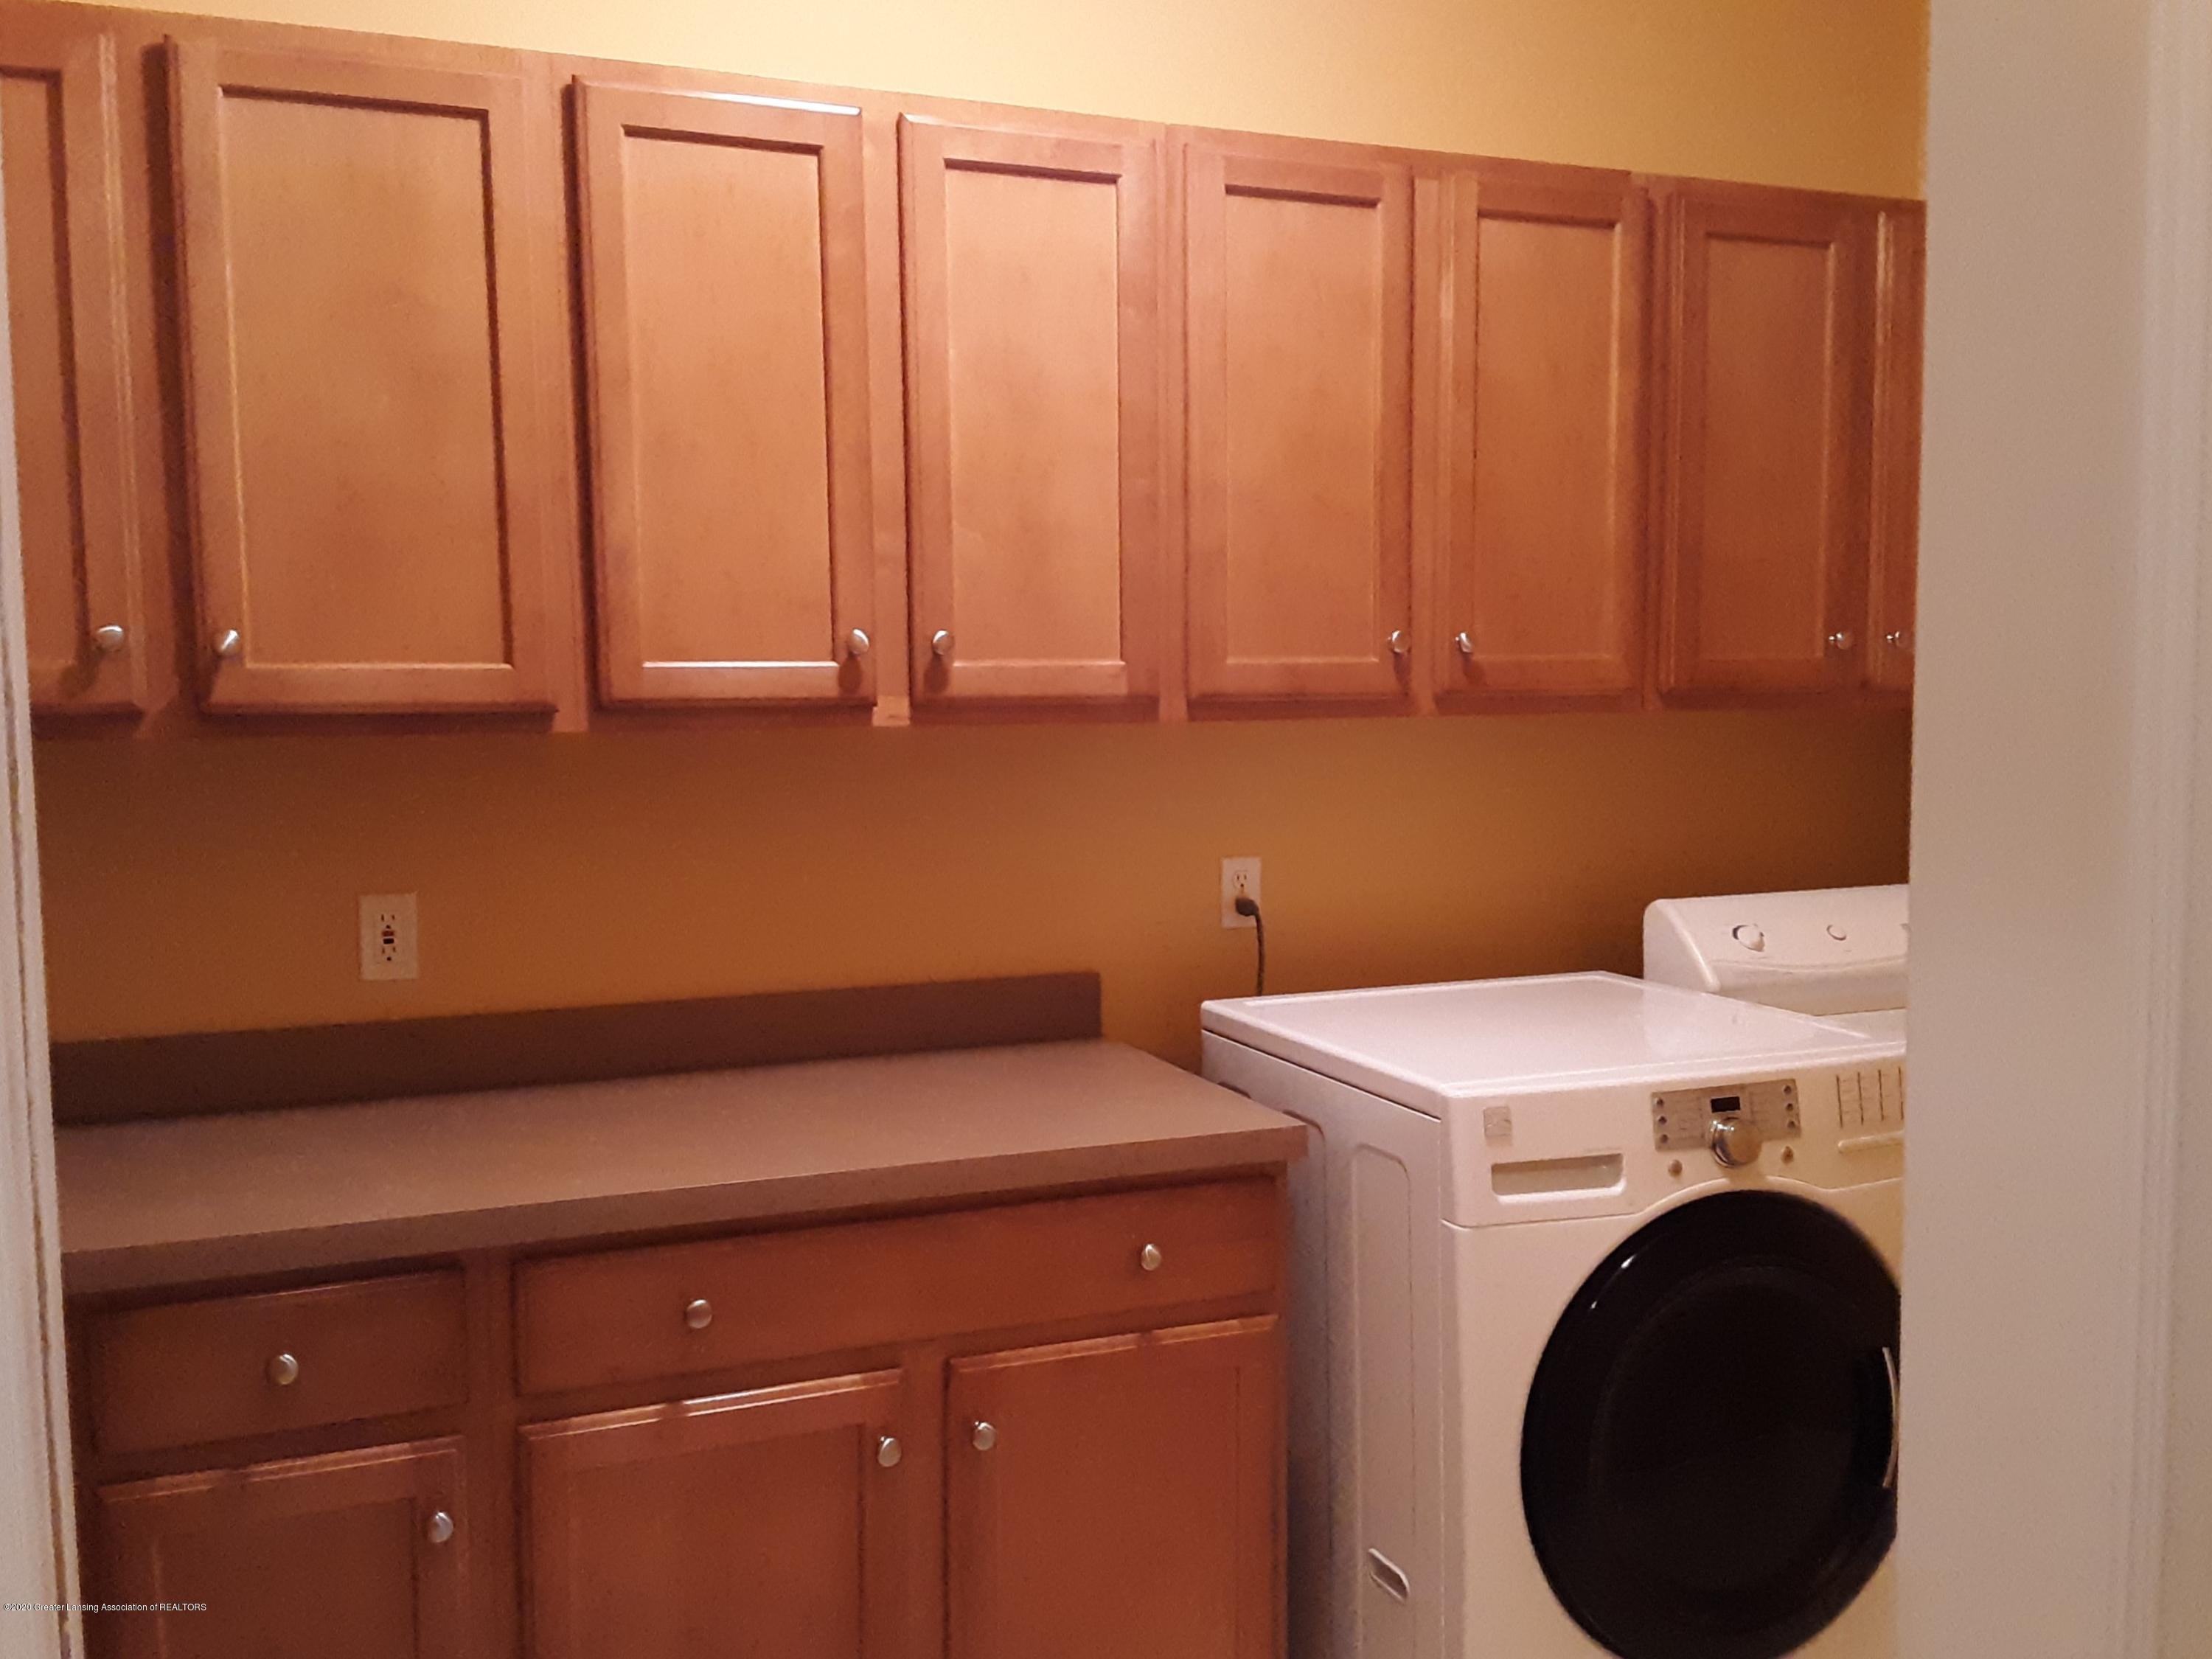 13142 Blaisdell Dr - 15. First Floor Laundry - 16